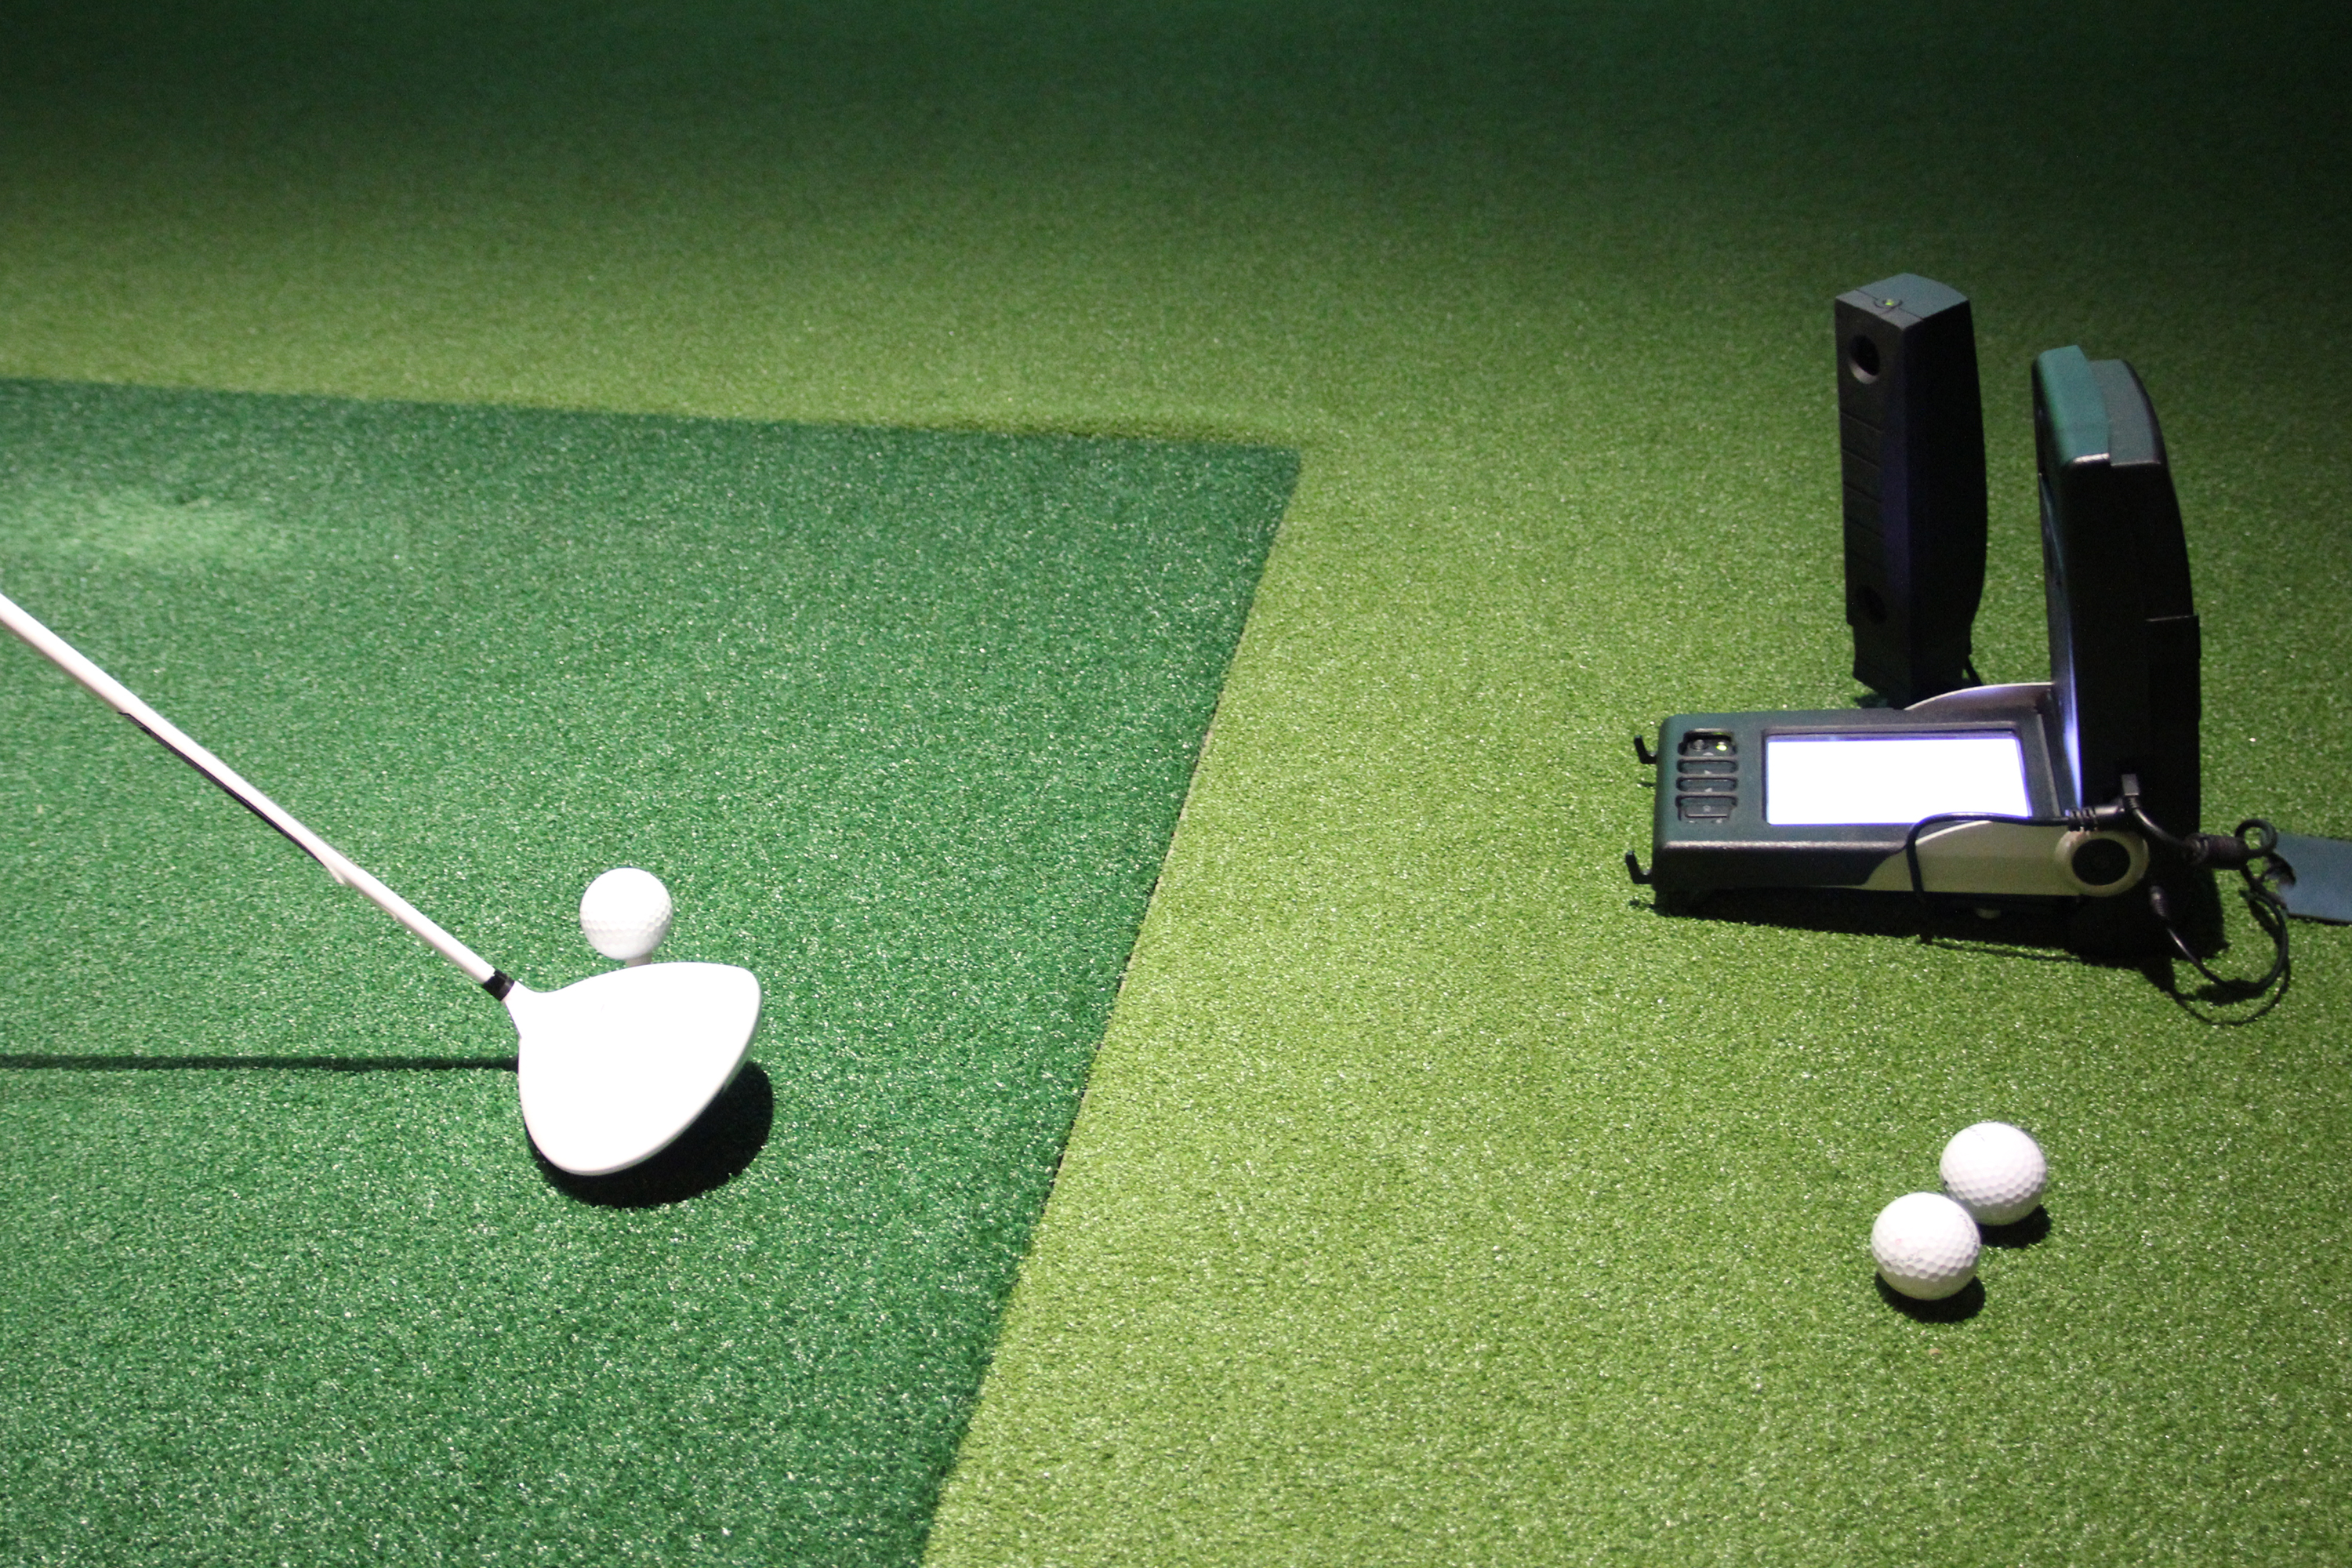 GolfMagic used Foresight Sports GC2 with HMT to conduct the test